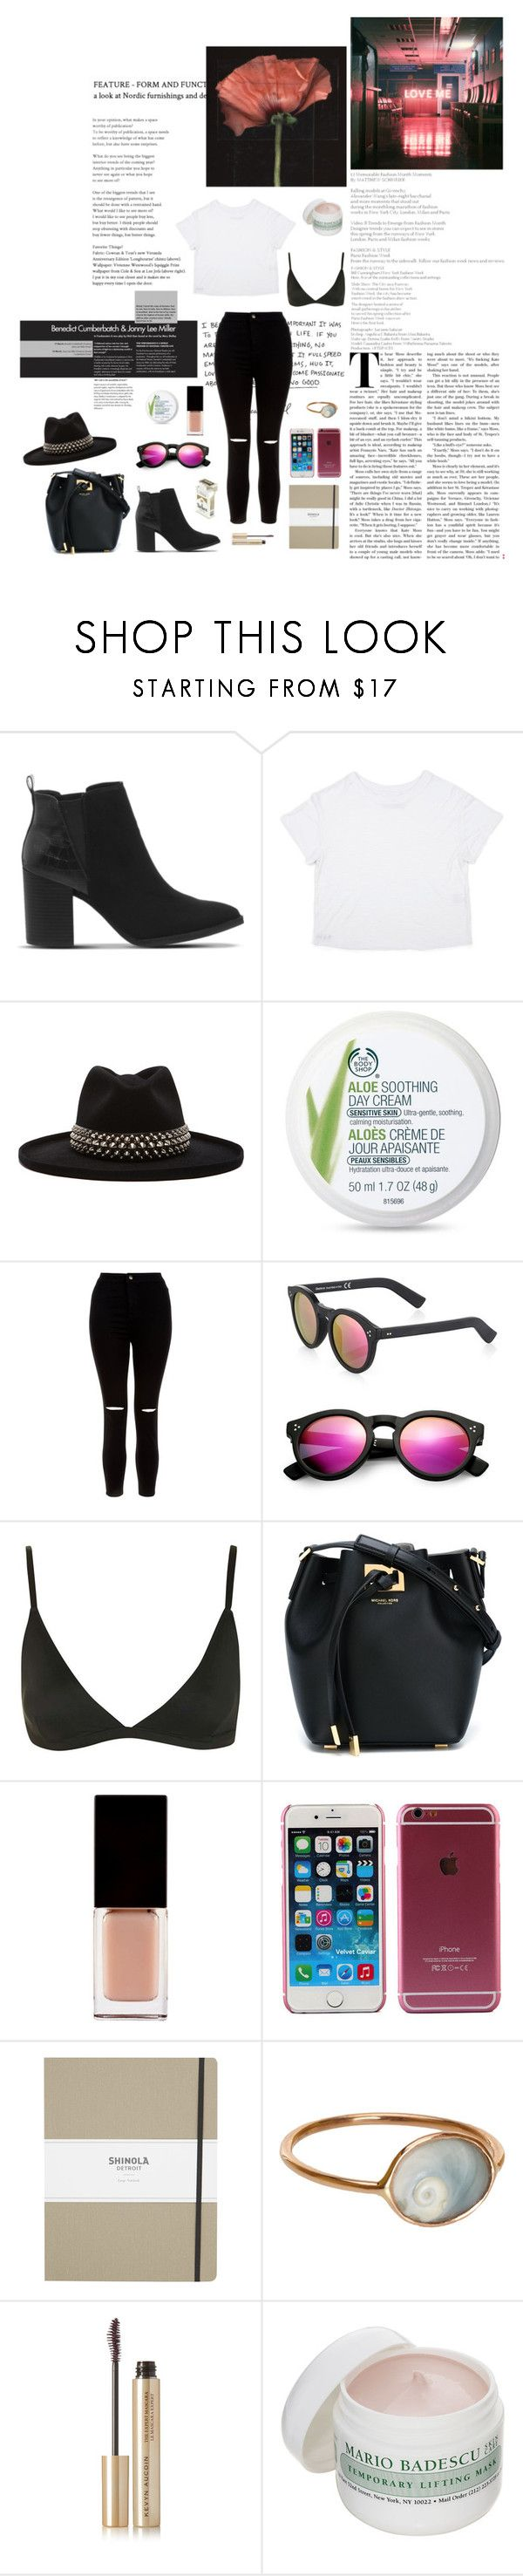 """""""you give me anxiety"""" by velvetshores ❤ liked on Polyvore featuring Office, Gladys Tamez Millinery, The Body Shop, New Look, Illesteva, Topshop, Michael Kors, Serge Lutens, Shinola and Dezso by Sara Beltrán"""